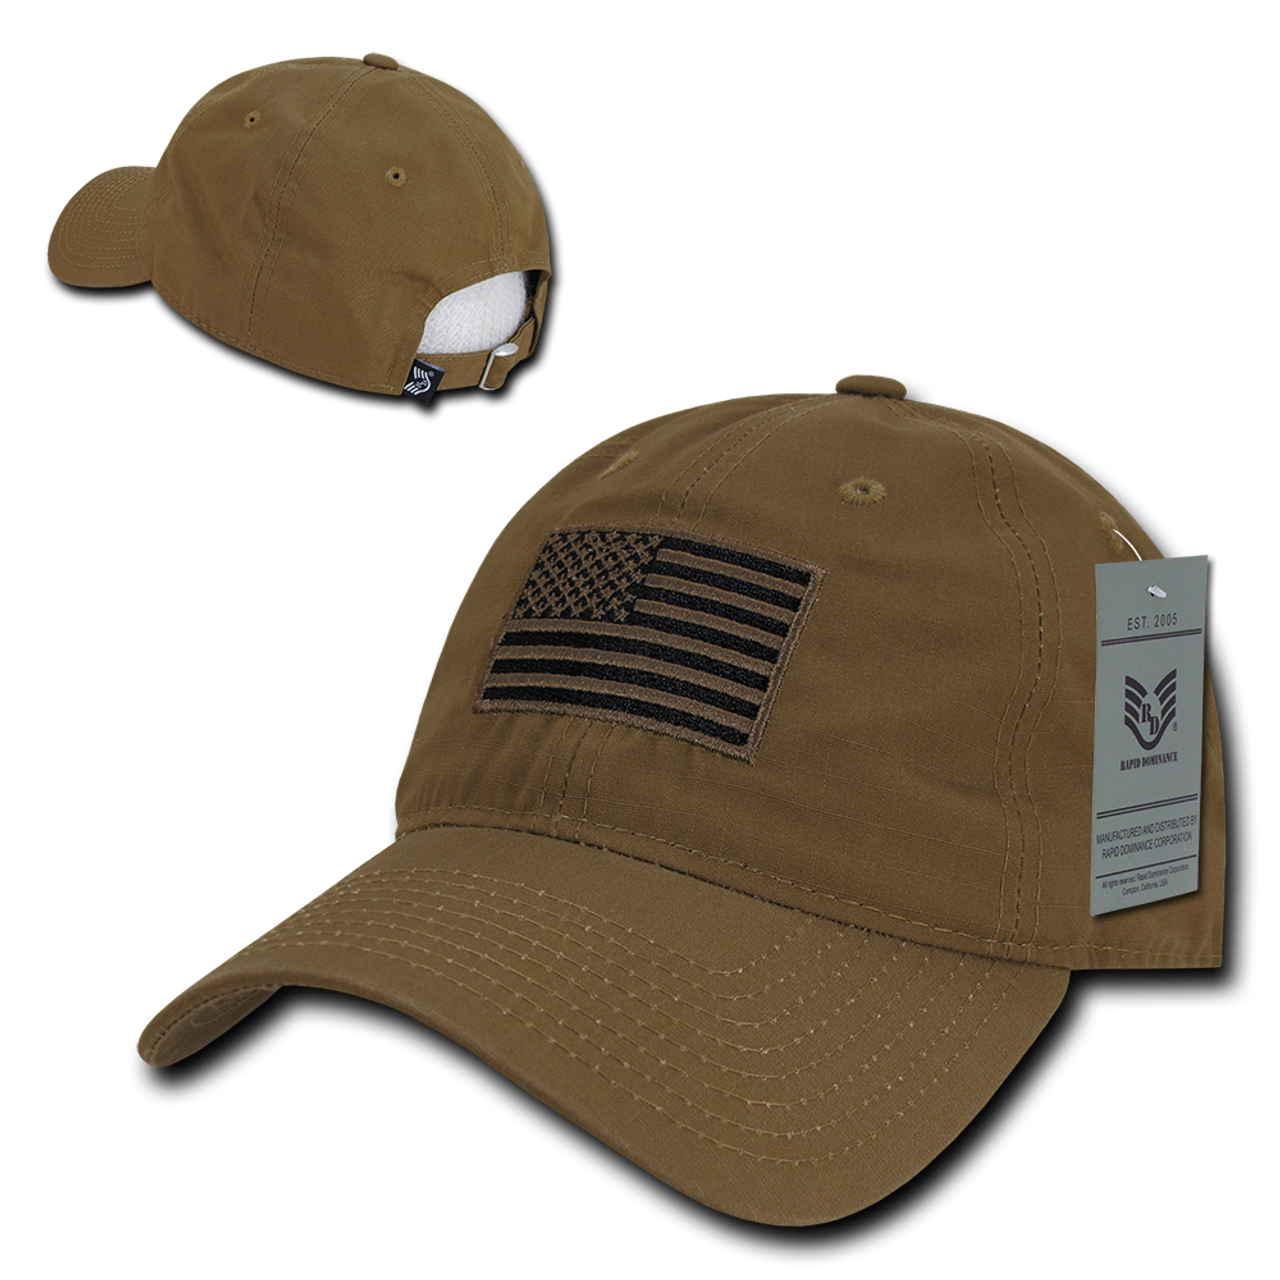 947b752c65289 S73 - USA Flag Cap - Relaxed Ripstop - Cotton - Coyote - USMILITARYHATS.COM